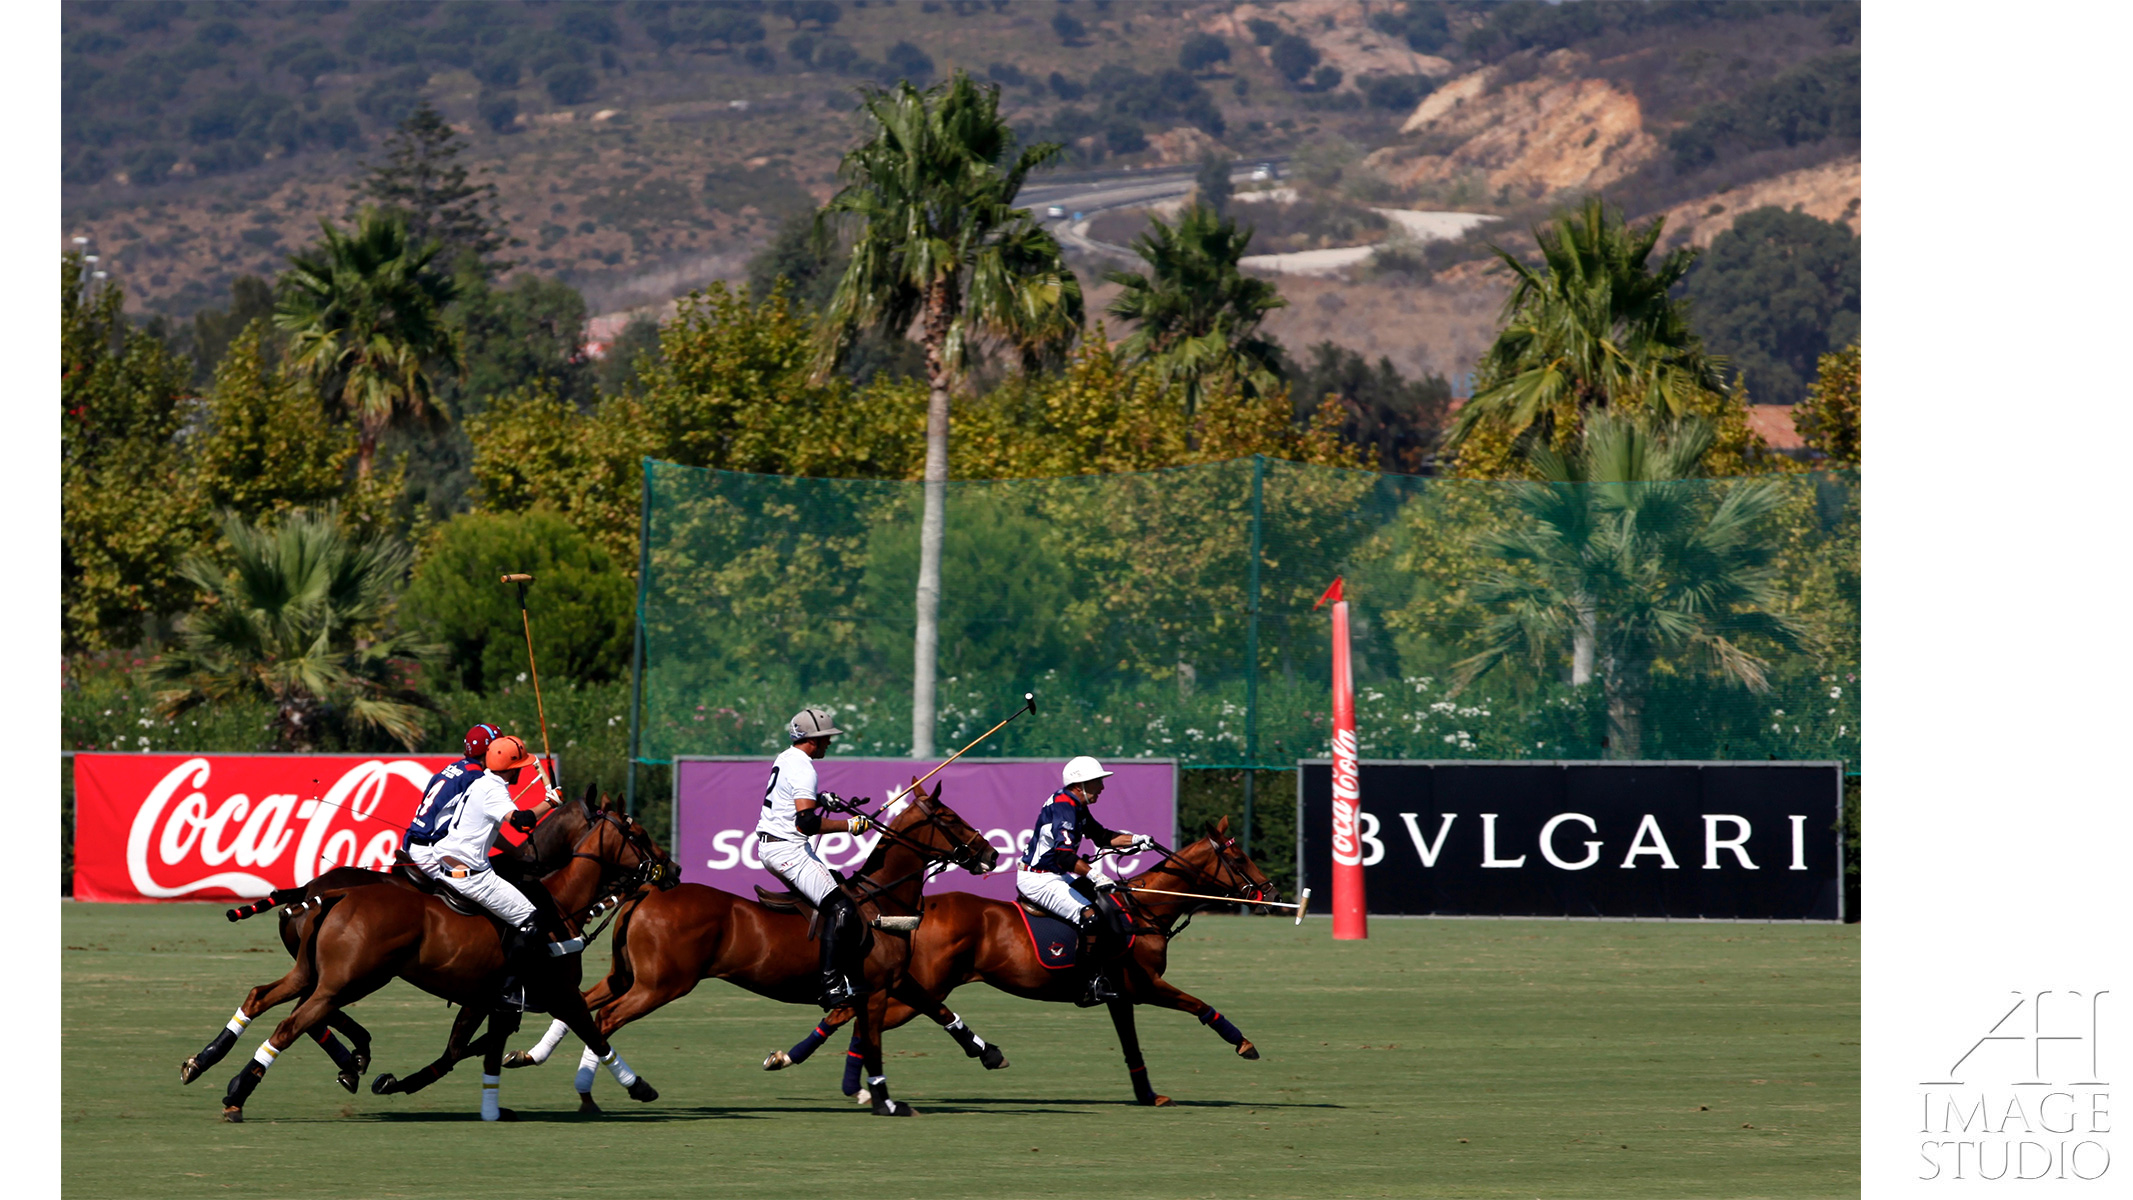 Sotogrande finals polo sport photography Santa Maria Polo Club